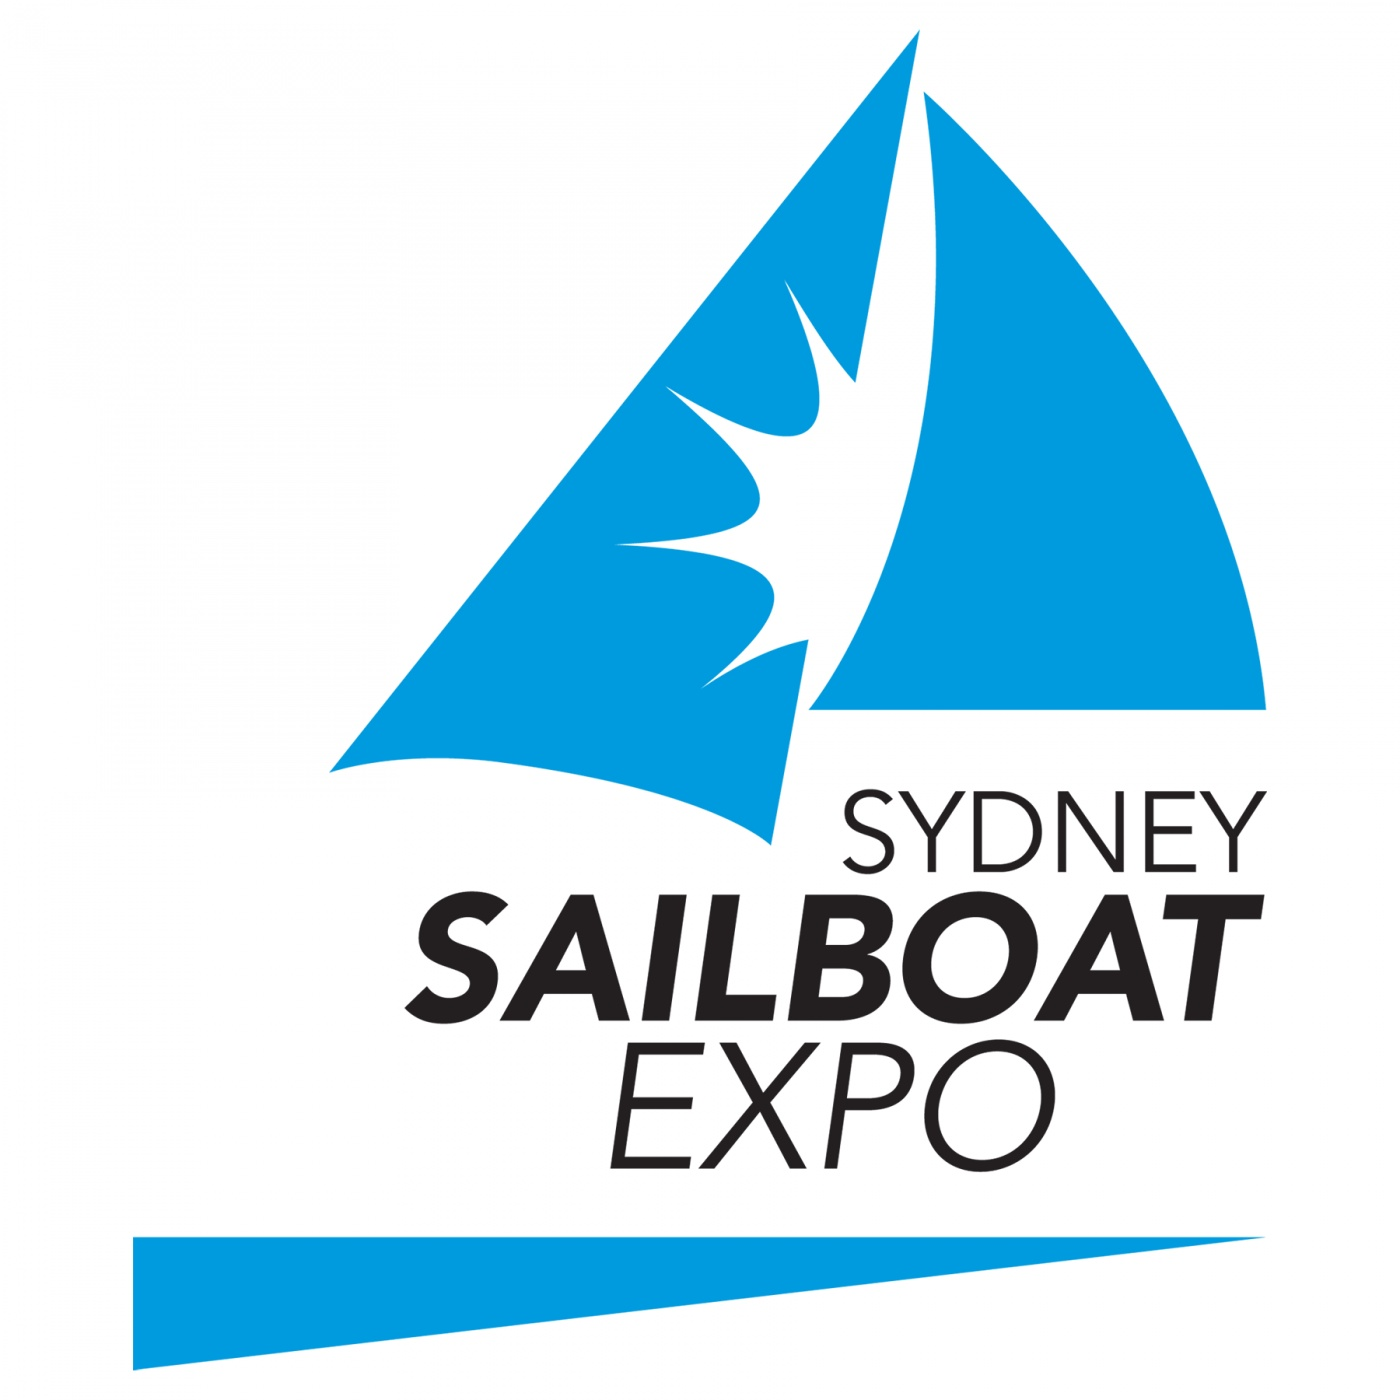 Sydney Sailboat Expo